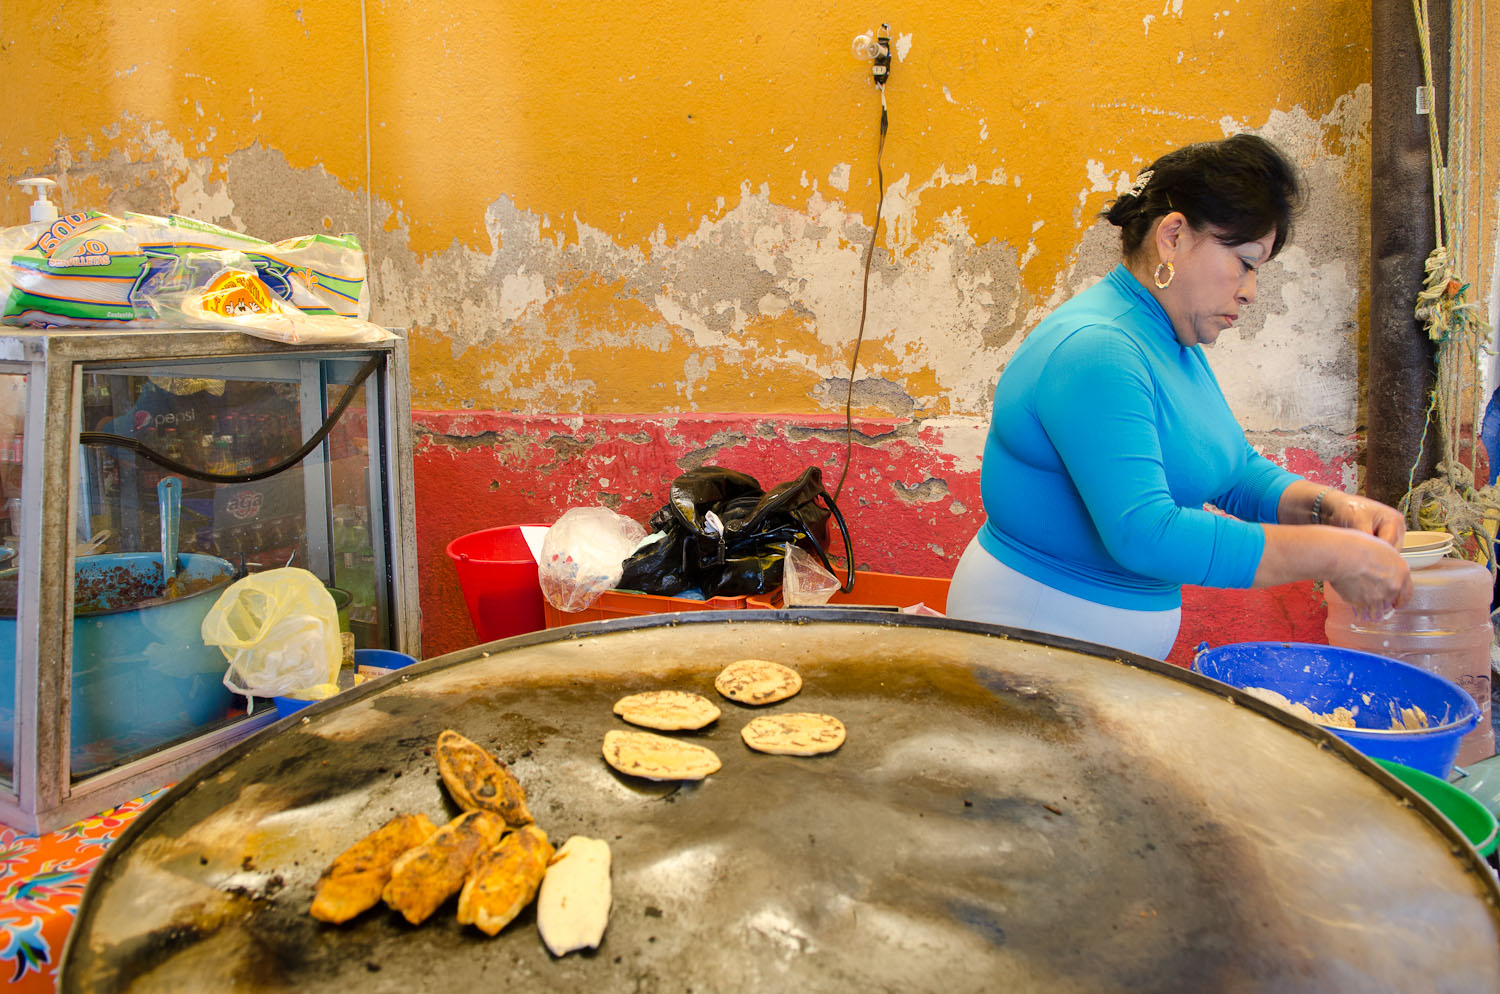 Gorditas by Winnipeg travel photographer